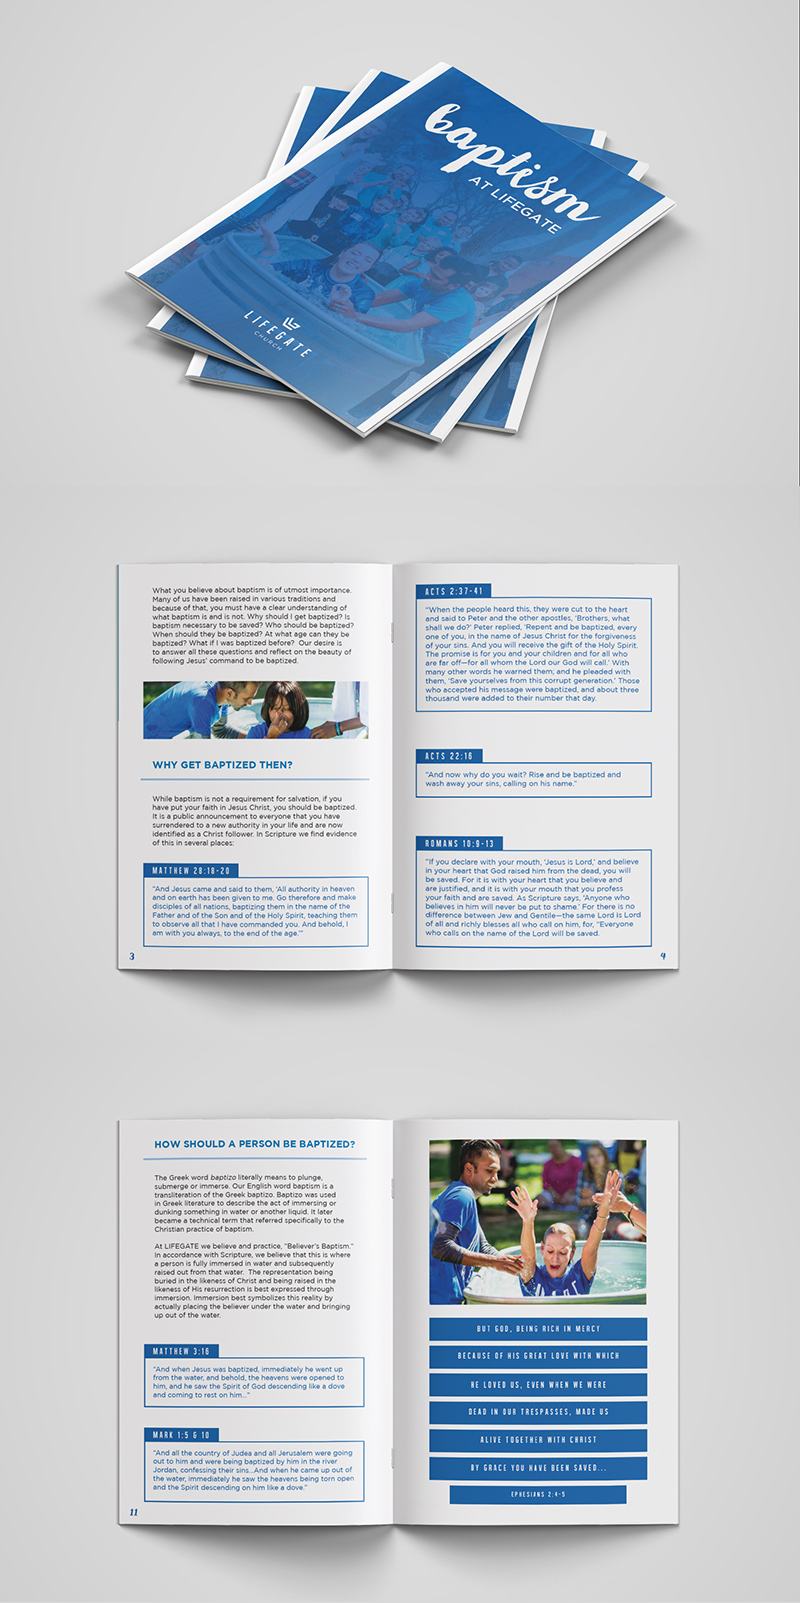 LIFEGATE CHURCH - BAPTISM BOOKLET